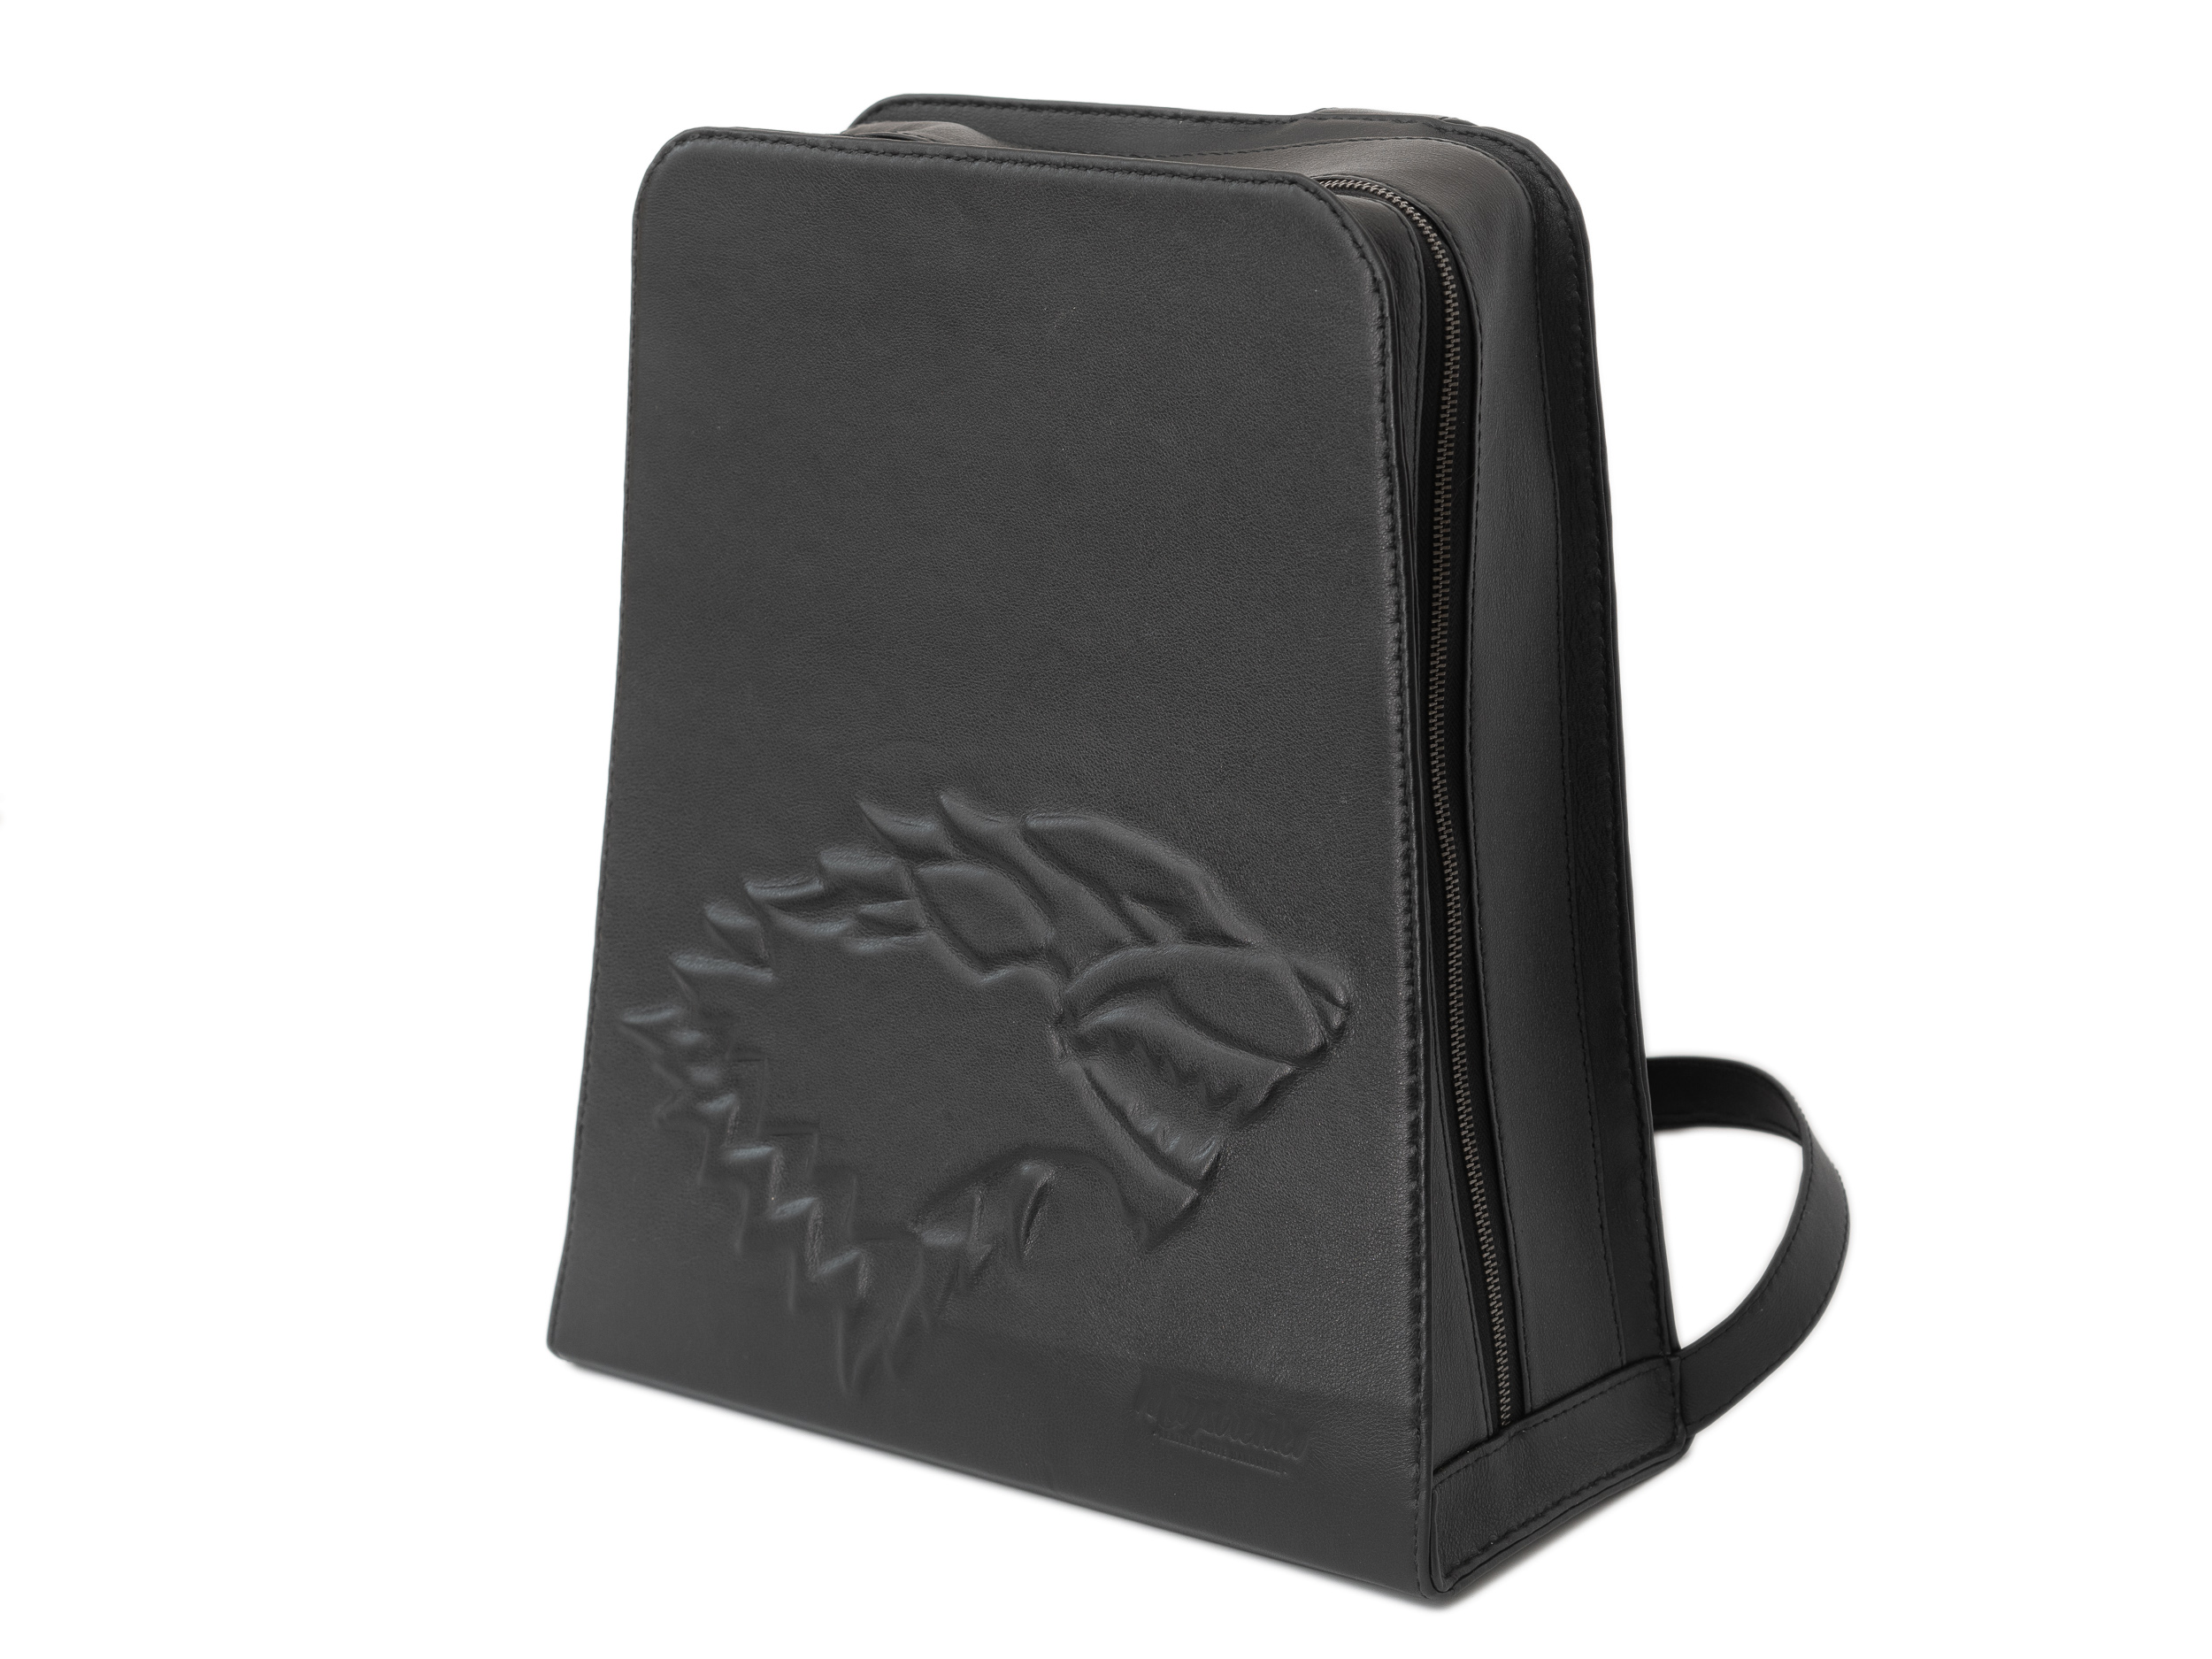 Thrones Player BackPack